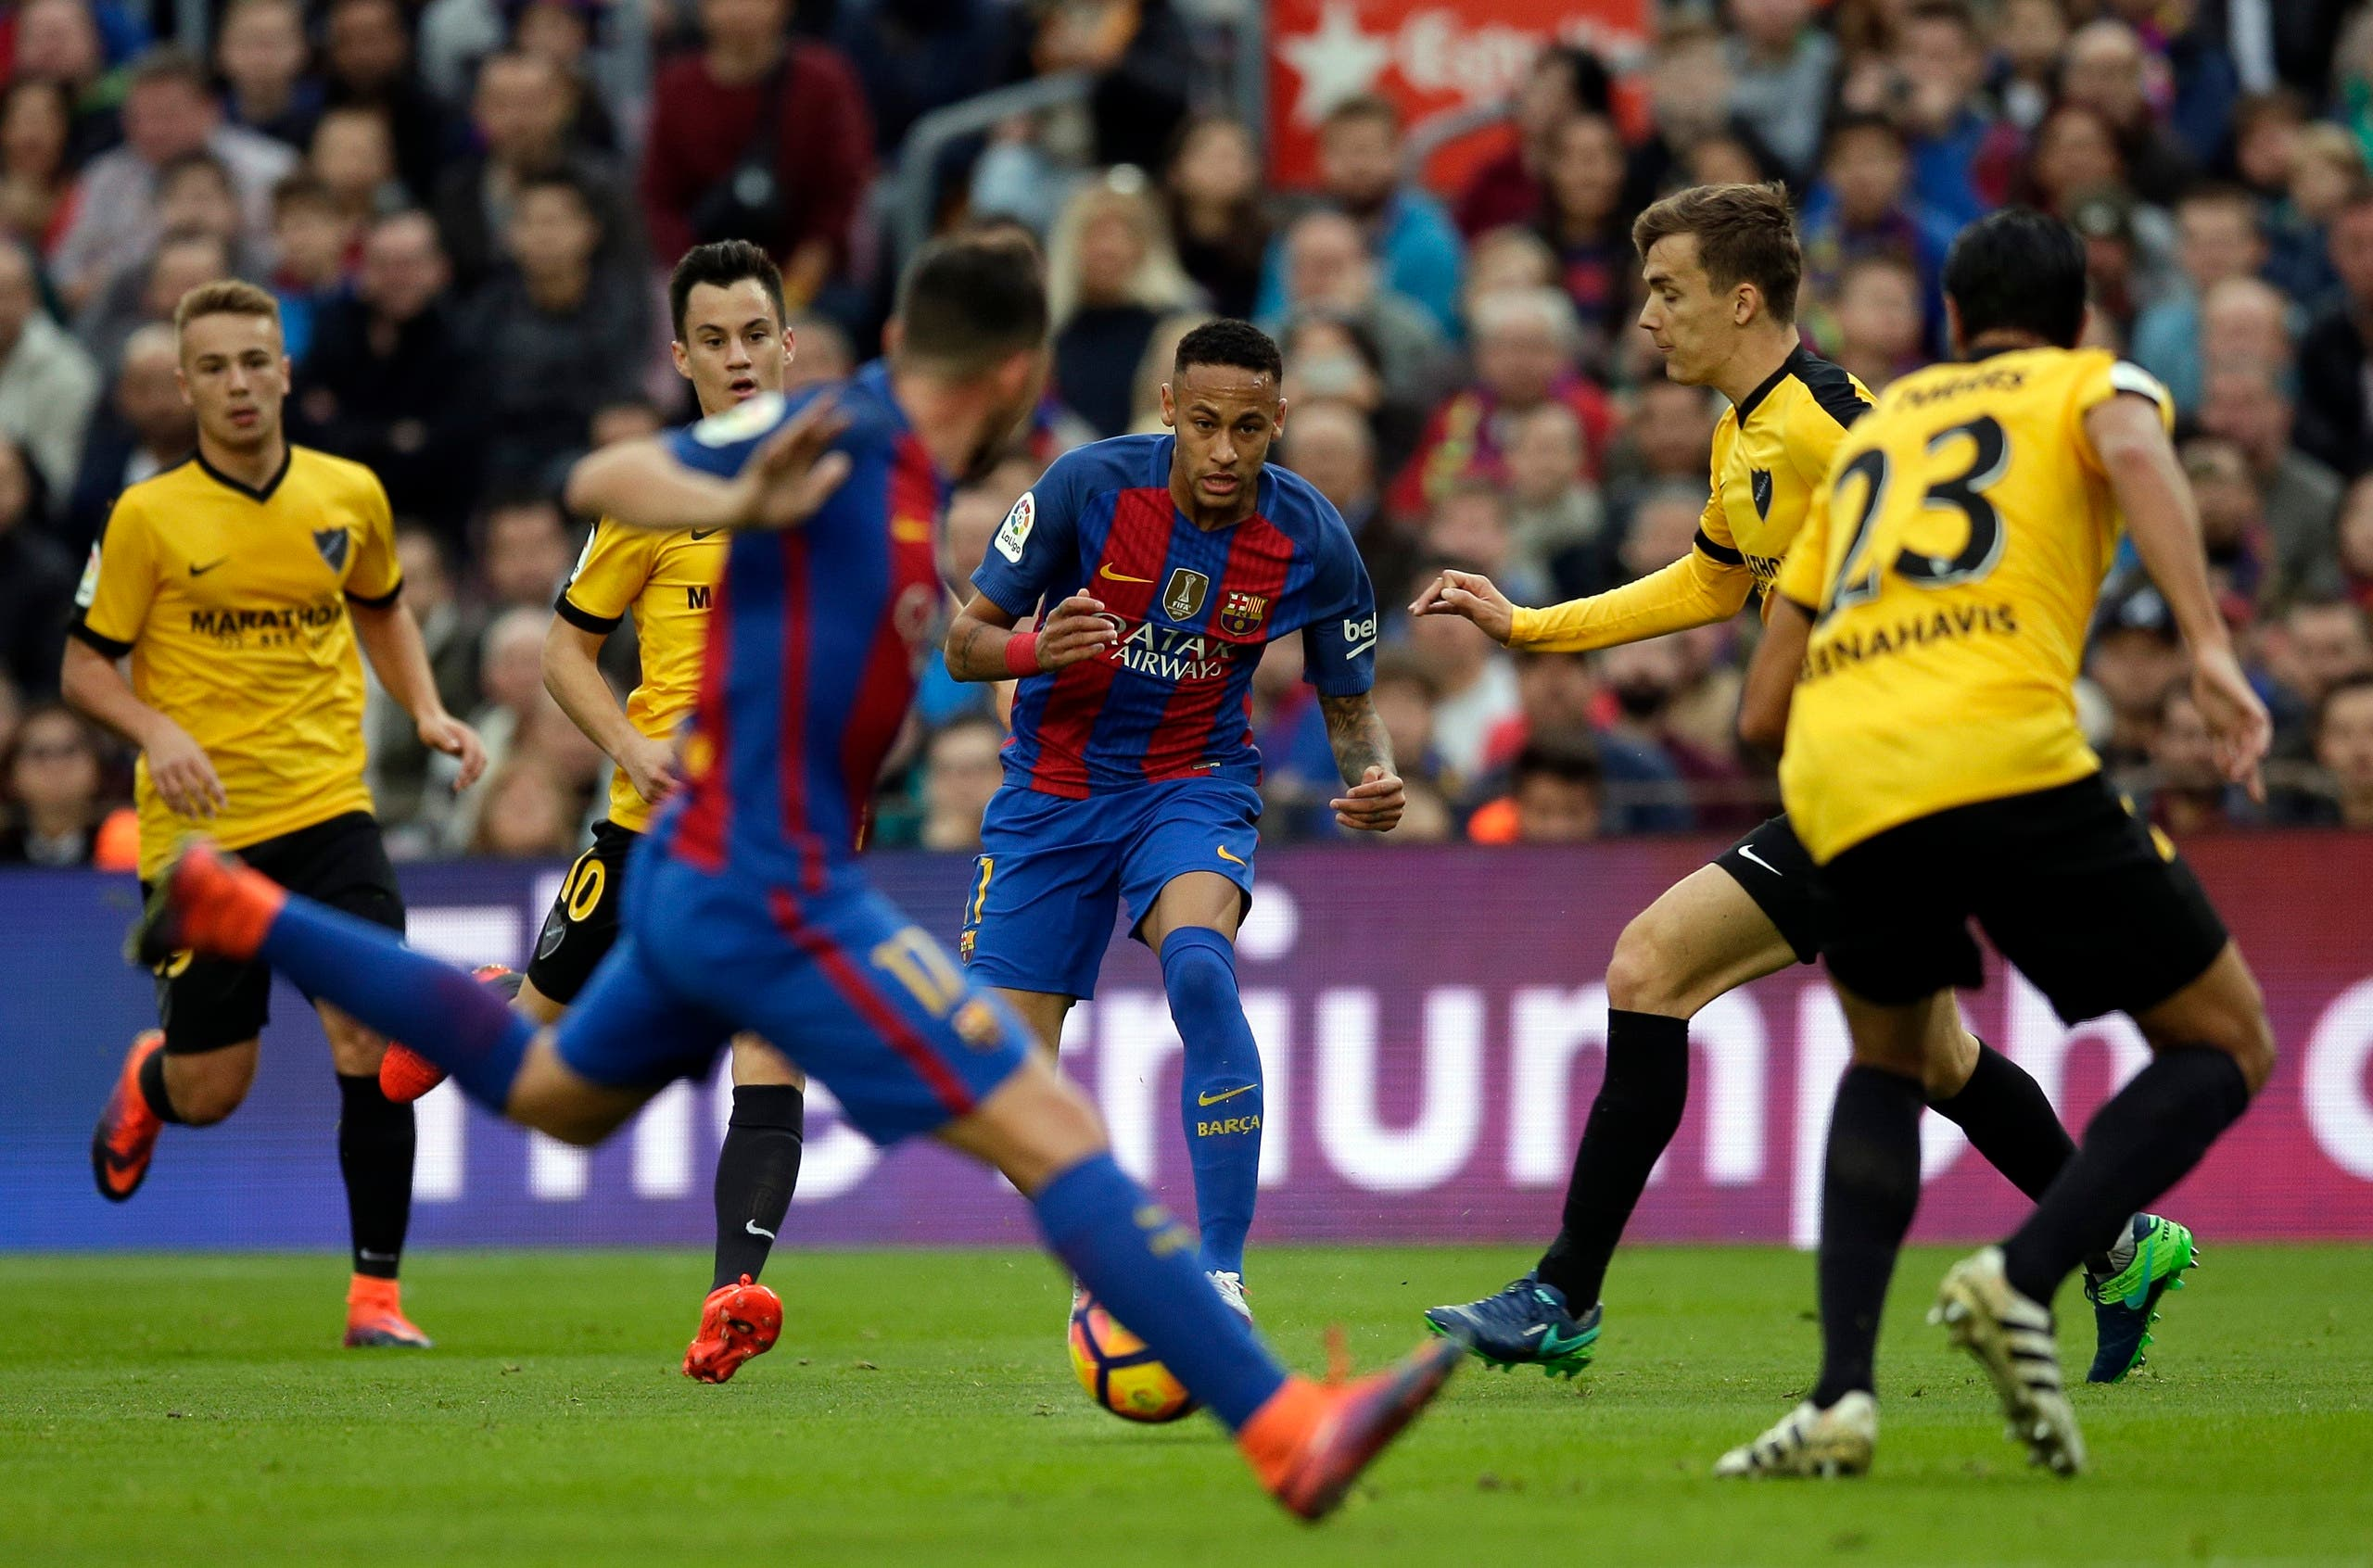 FC Barcelona's Neymar, center background, kicks the ball during the Spanish La Liga soccer match between FC Barcelona and Malaga at the Camp Nou in Barcelona, Spain, Saturday, Nov. 19, 2016. (AP)